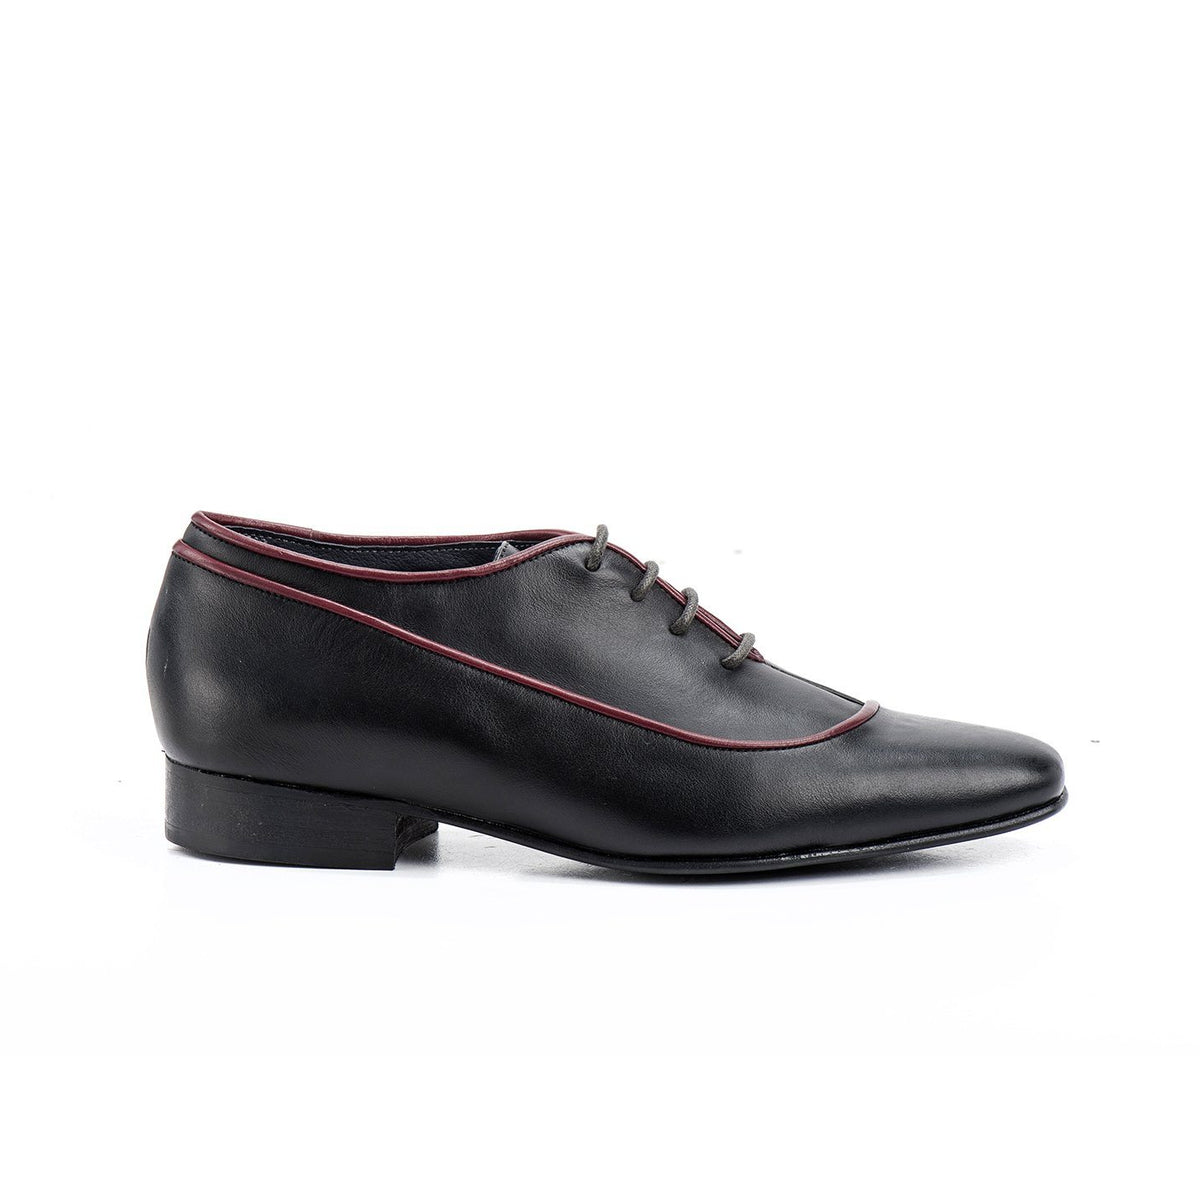 Black & Red Calf Florian Women's Shoes